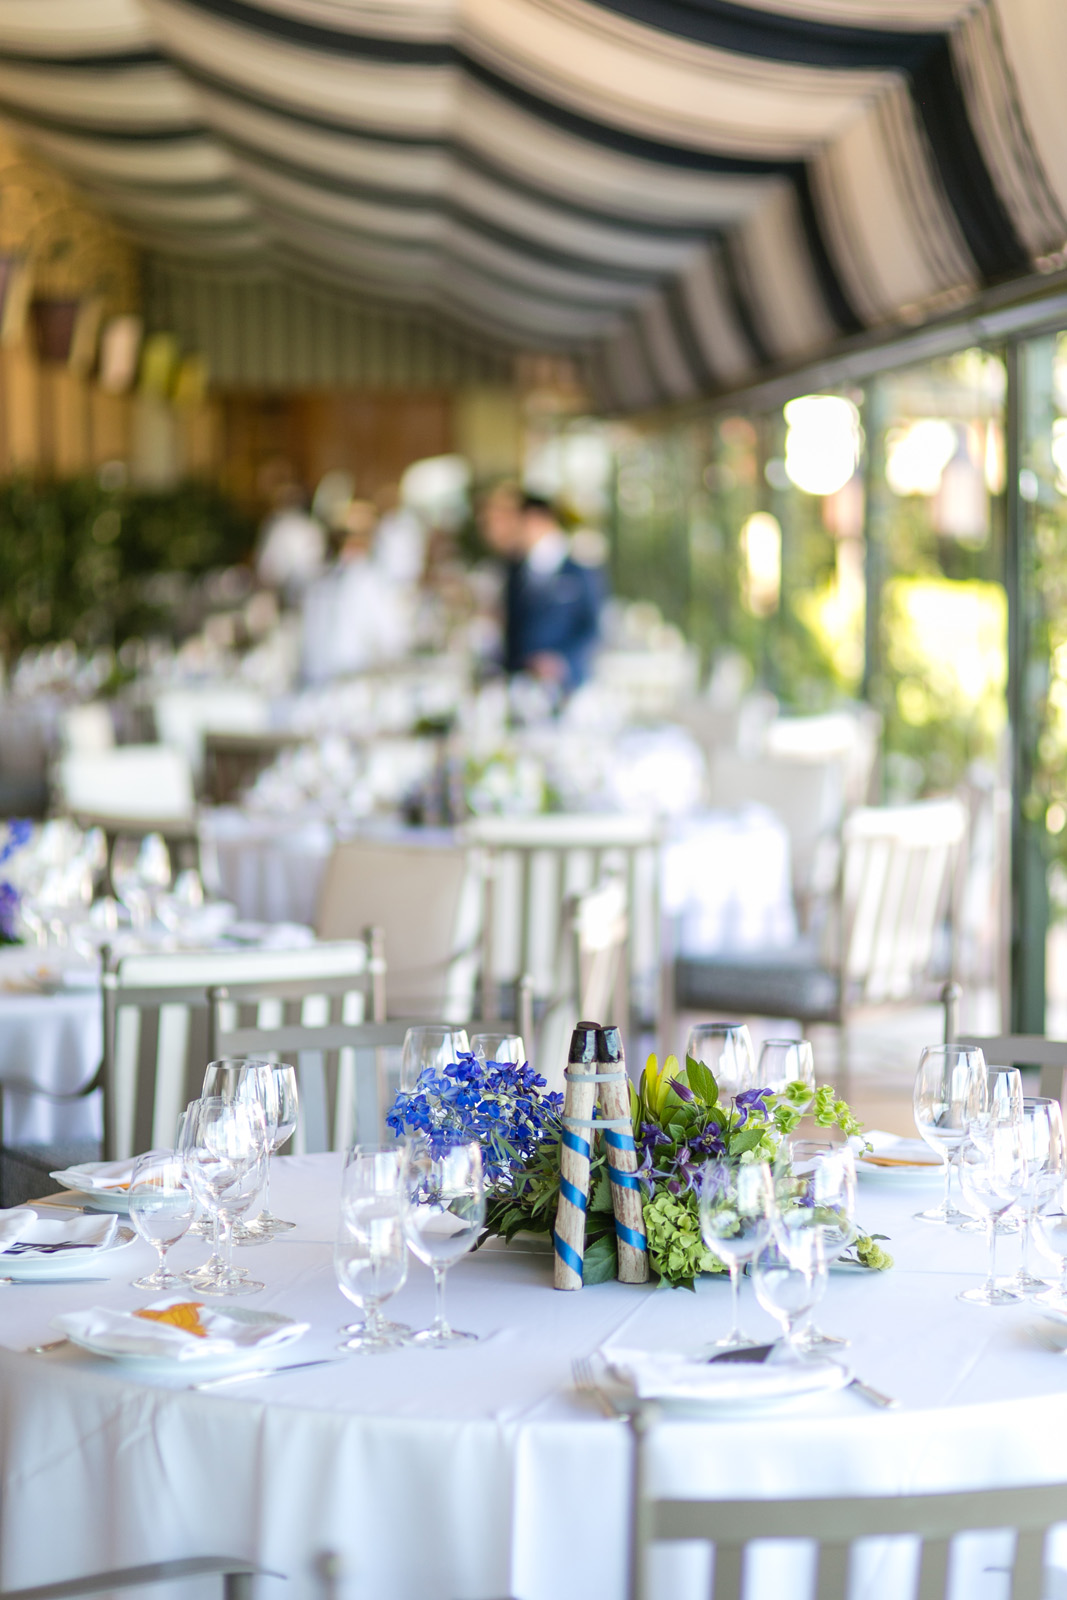 joeewong-engage17-hotel-cipriani-venice-034